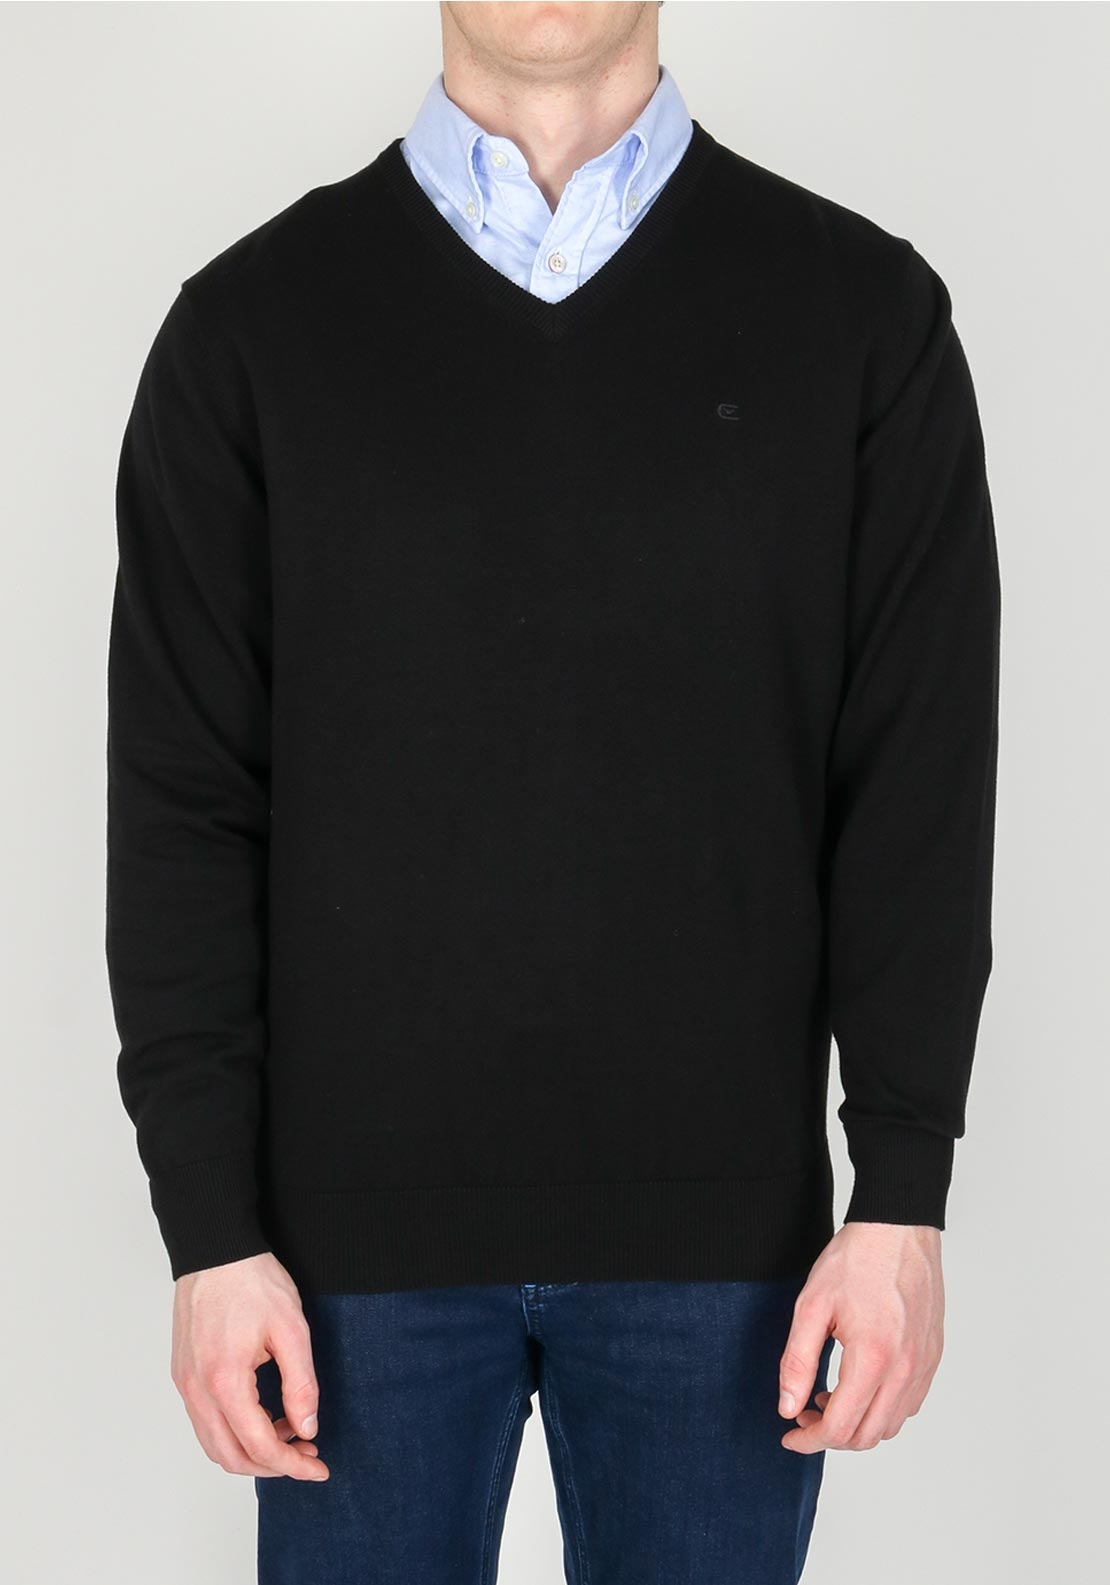 Casa Moda Mens V-neck Knitwear, Black